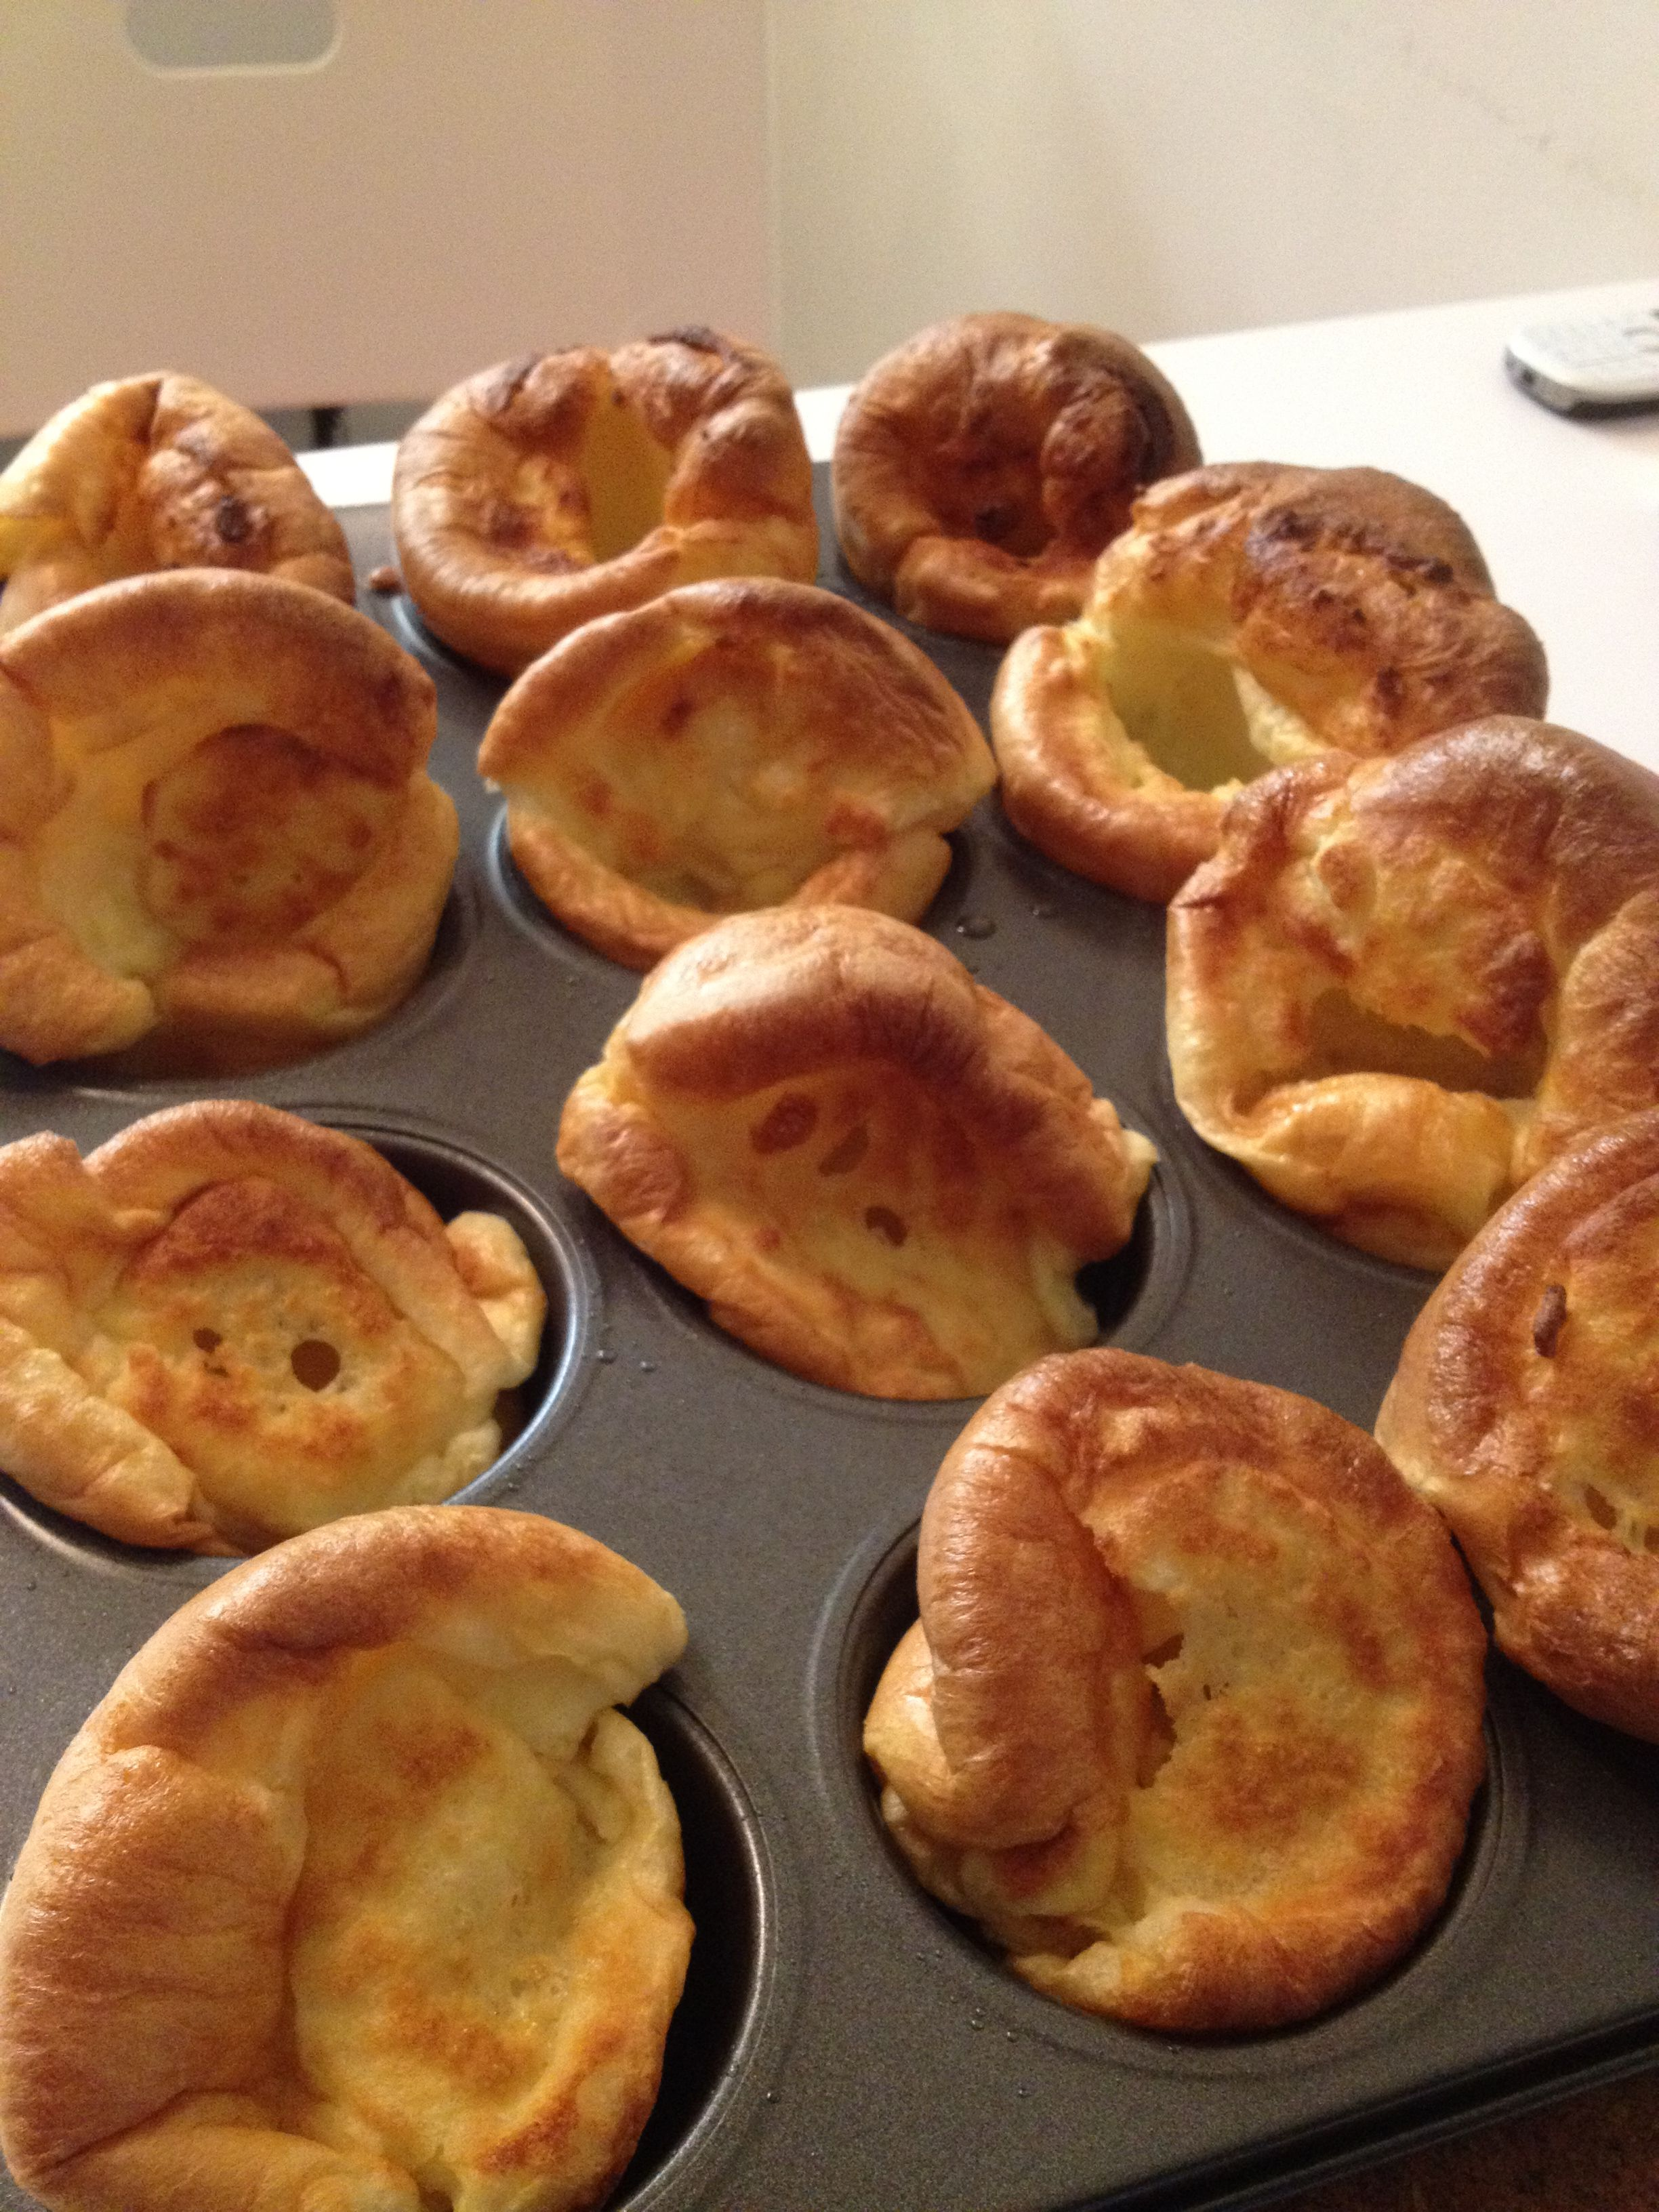 Yorkshire Pudding For 2 >> Yorkshire Pudding 1 Cup Flour 1 Cup Milk 3 Large Eggs